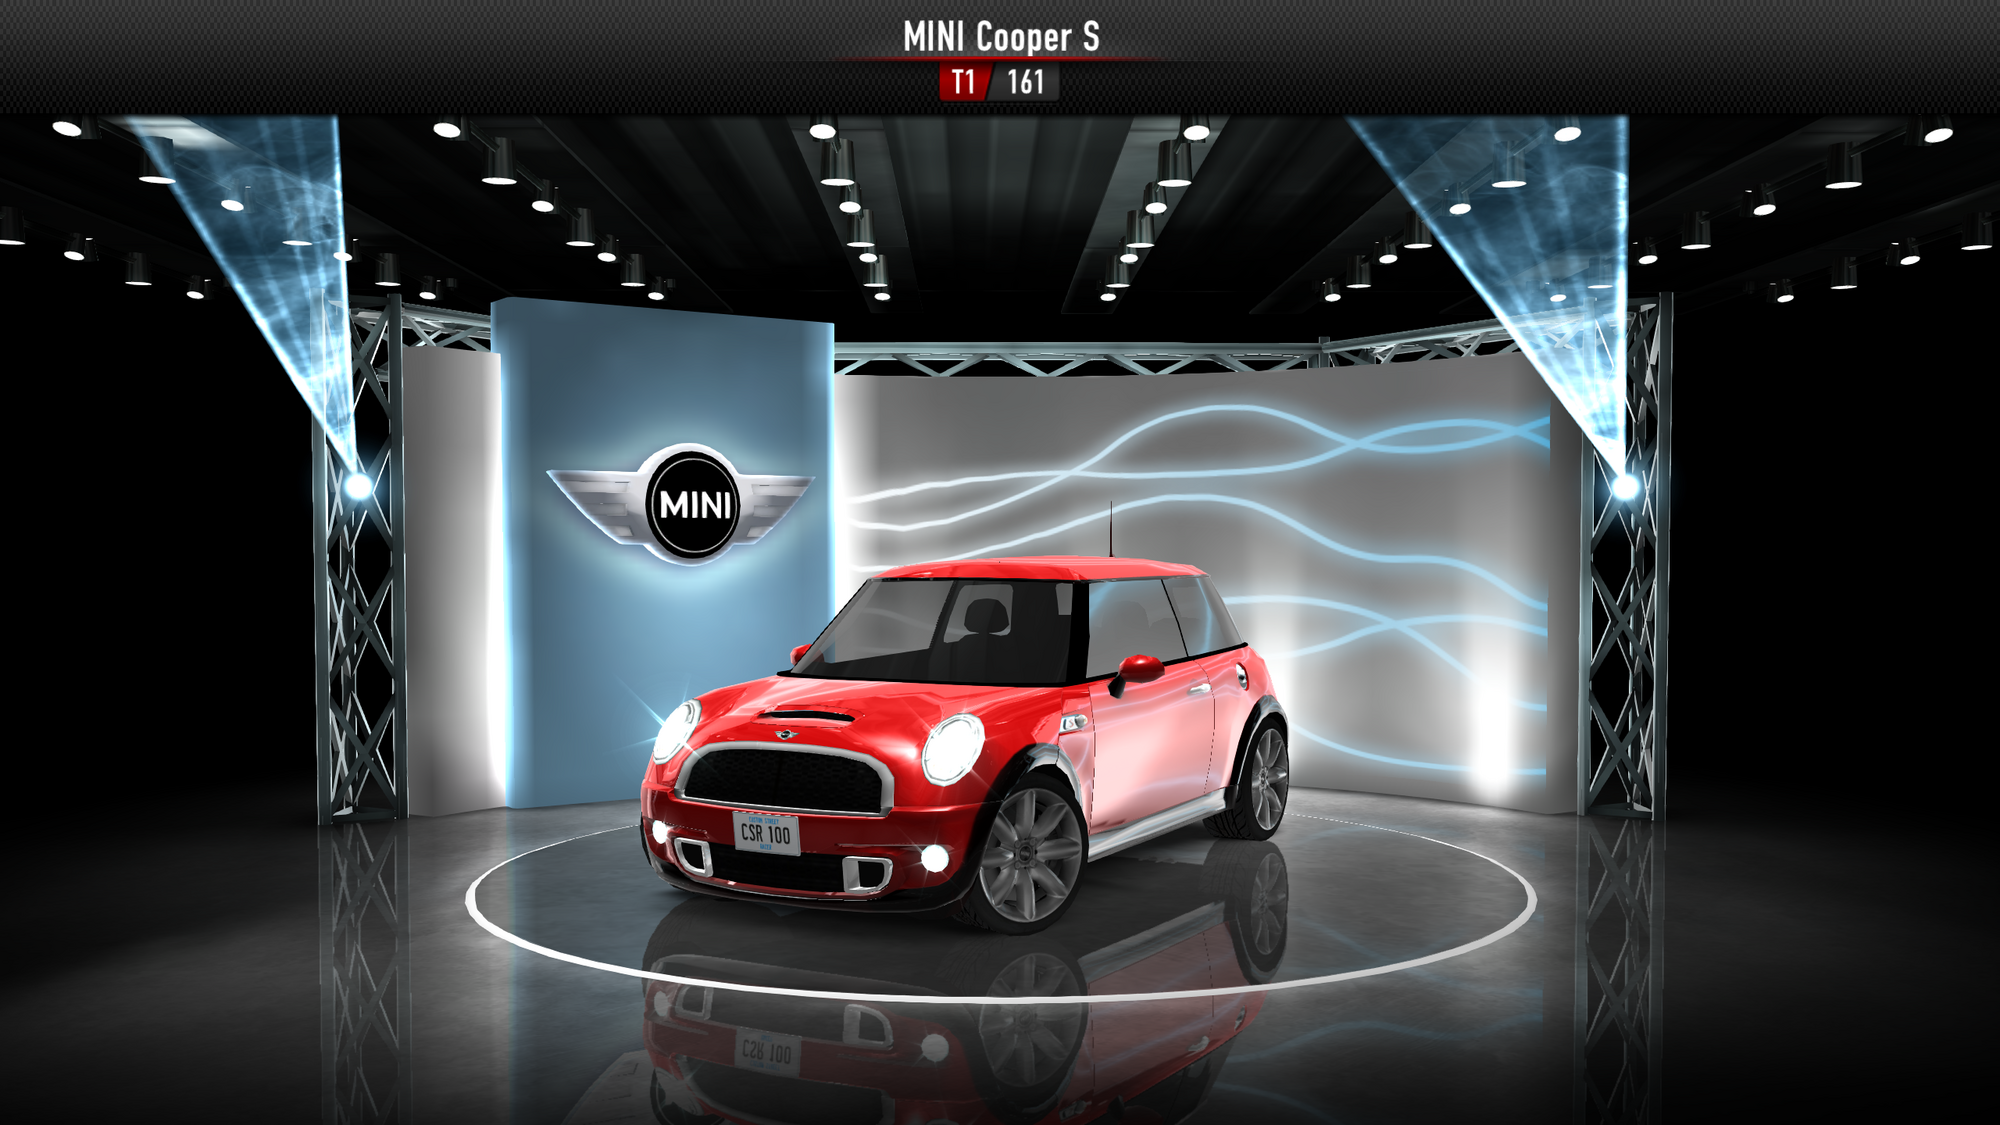 mini cooper s csr racing wiki fandom powered by wikia. Black Bedroom Furniture Sets. Home Design Ideas